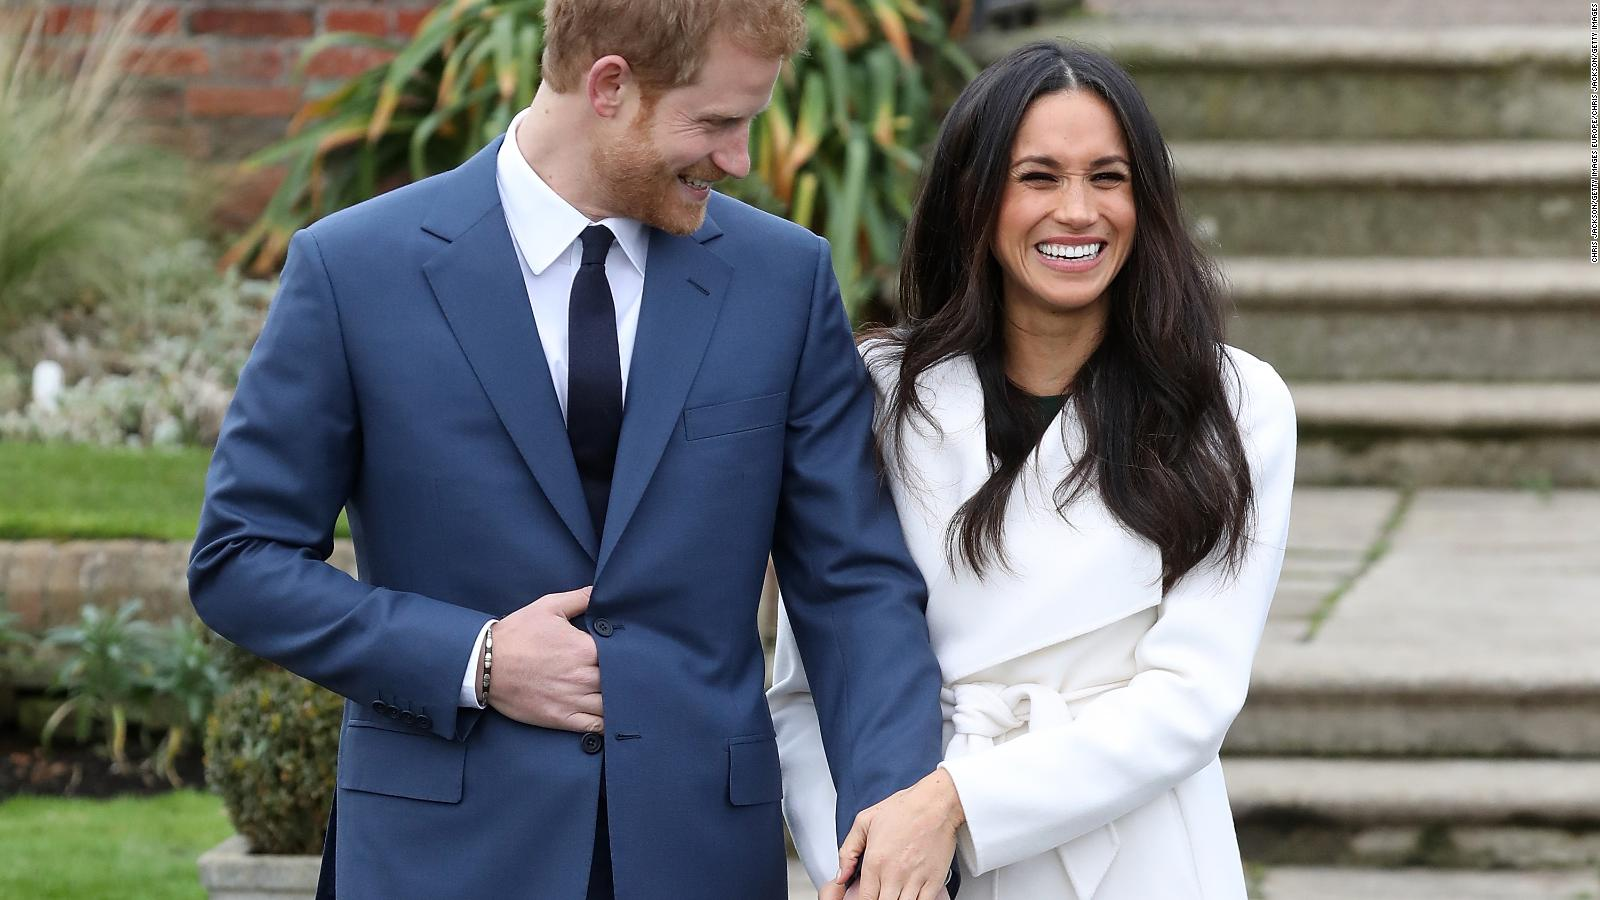 Everything You Need To Know About The Wedding Of Meghan Markle And Prince Harry Cnn